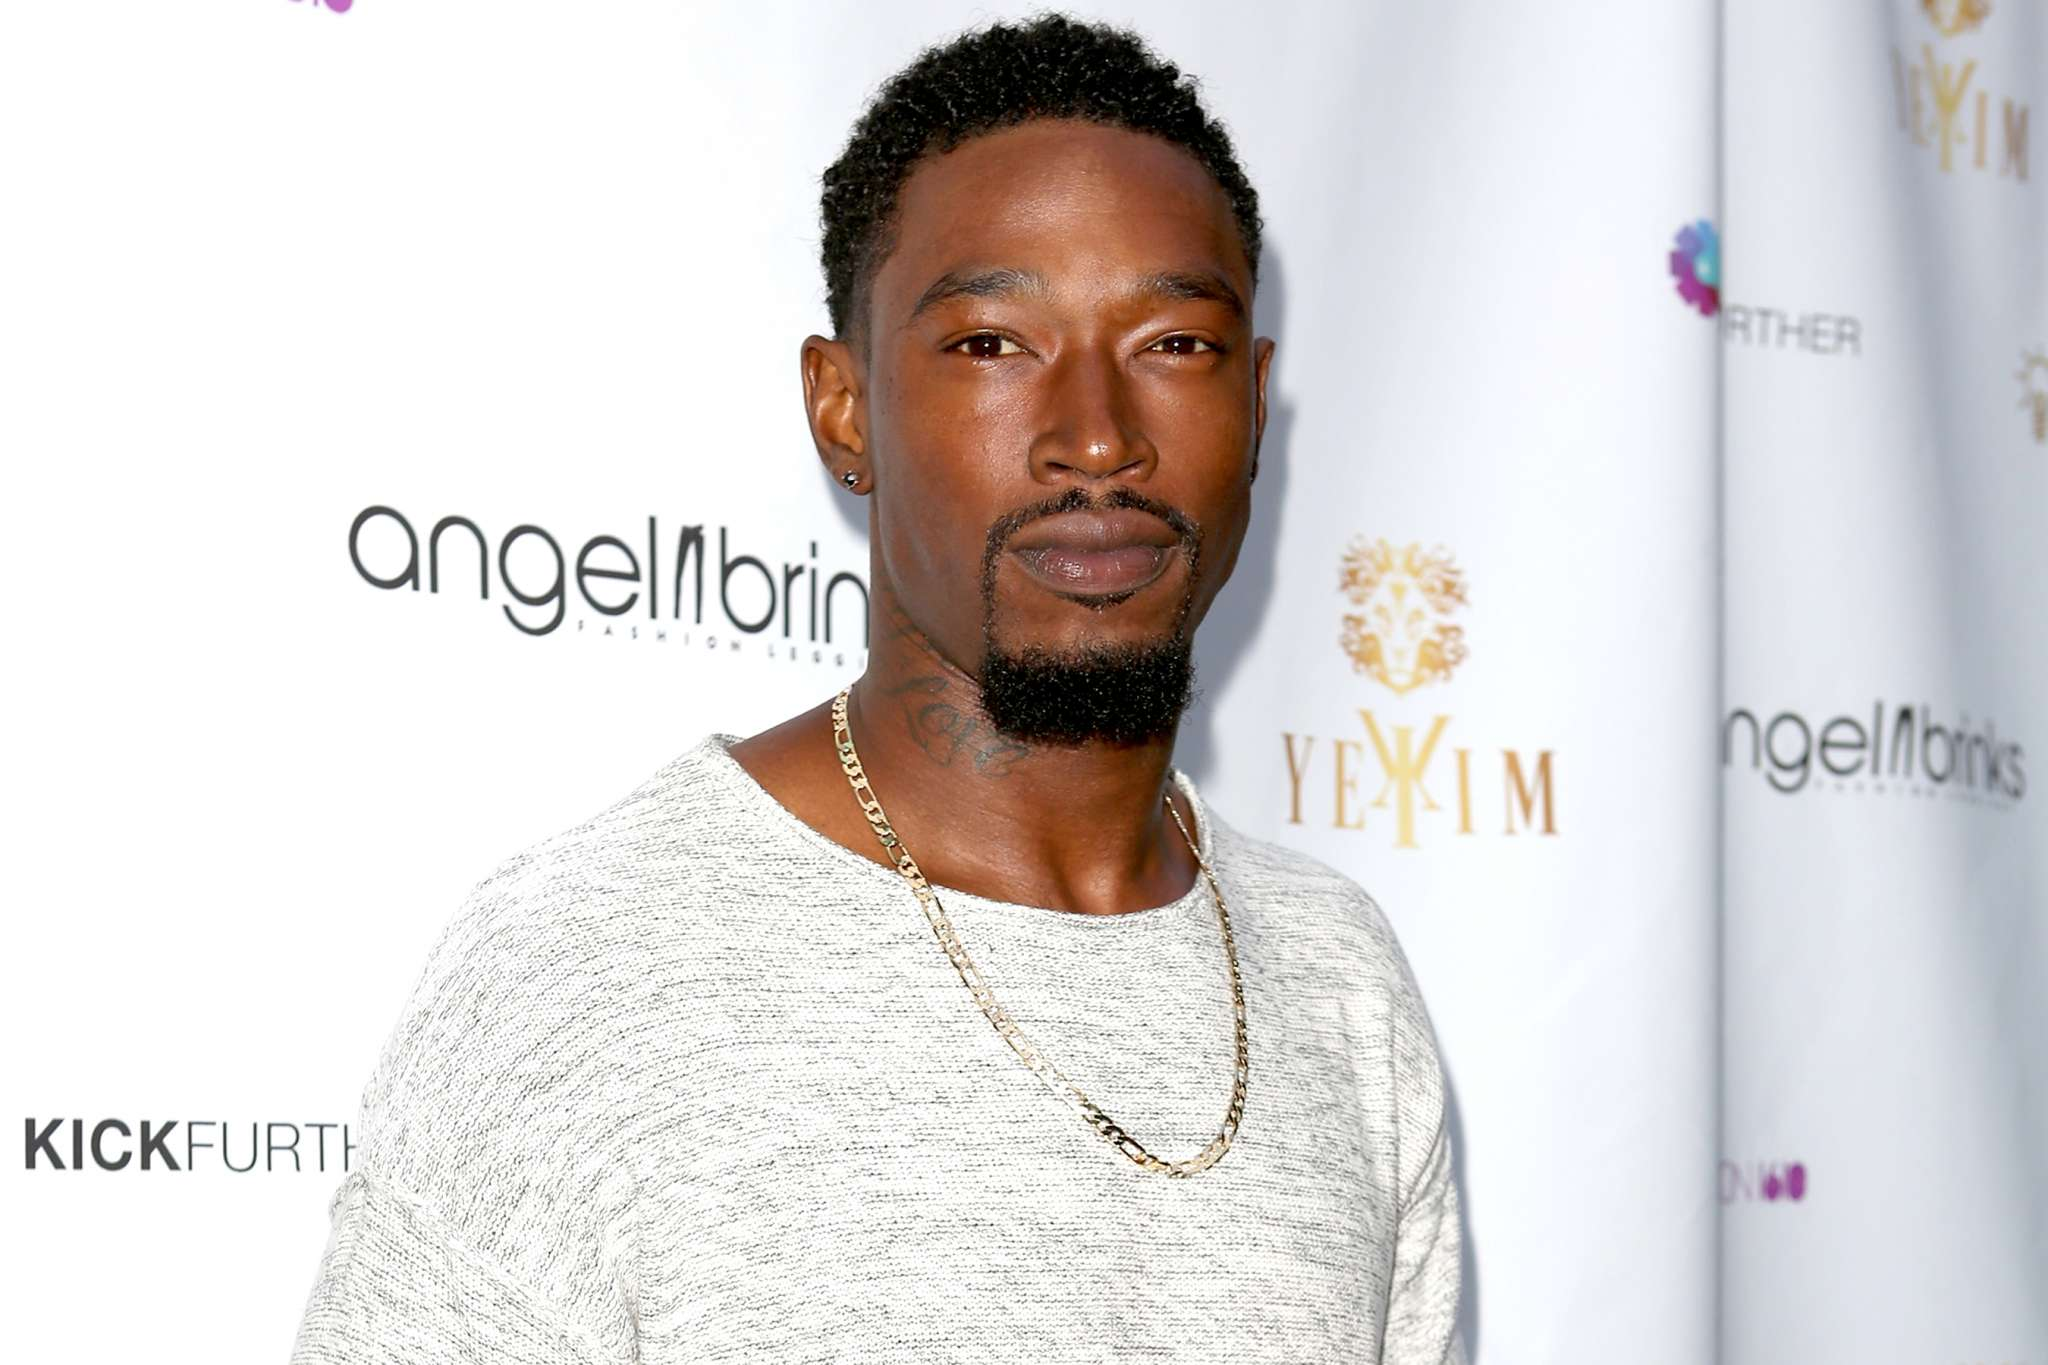 kevin-mccall-asks-rickey-smiley-for-help-and-denies-domestic-violence-claims